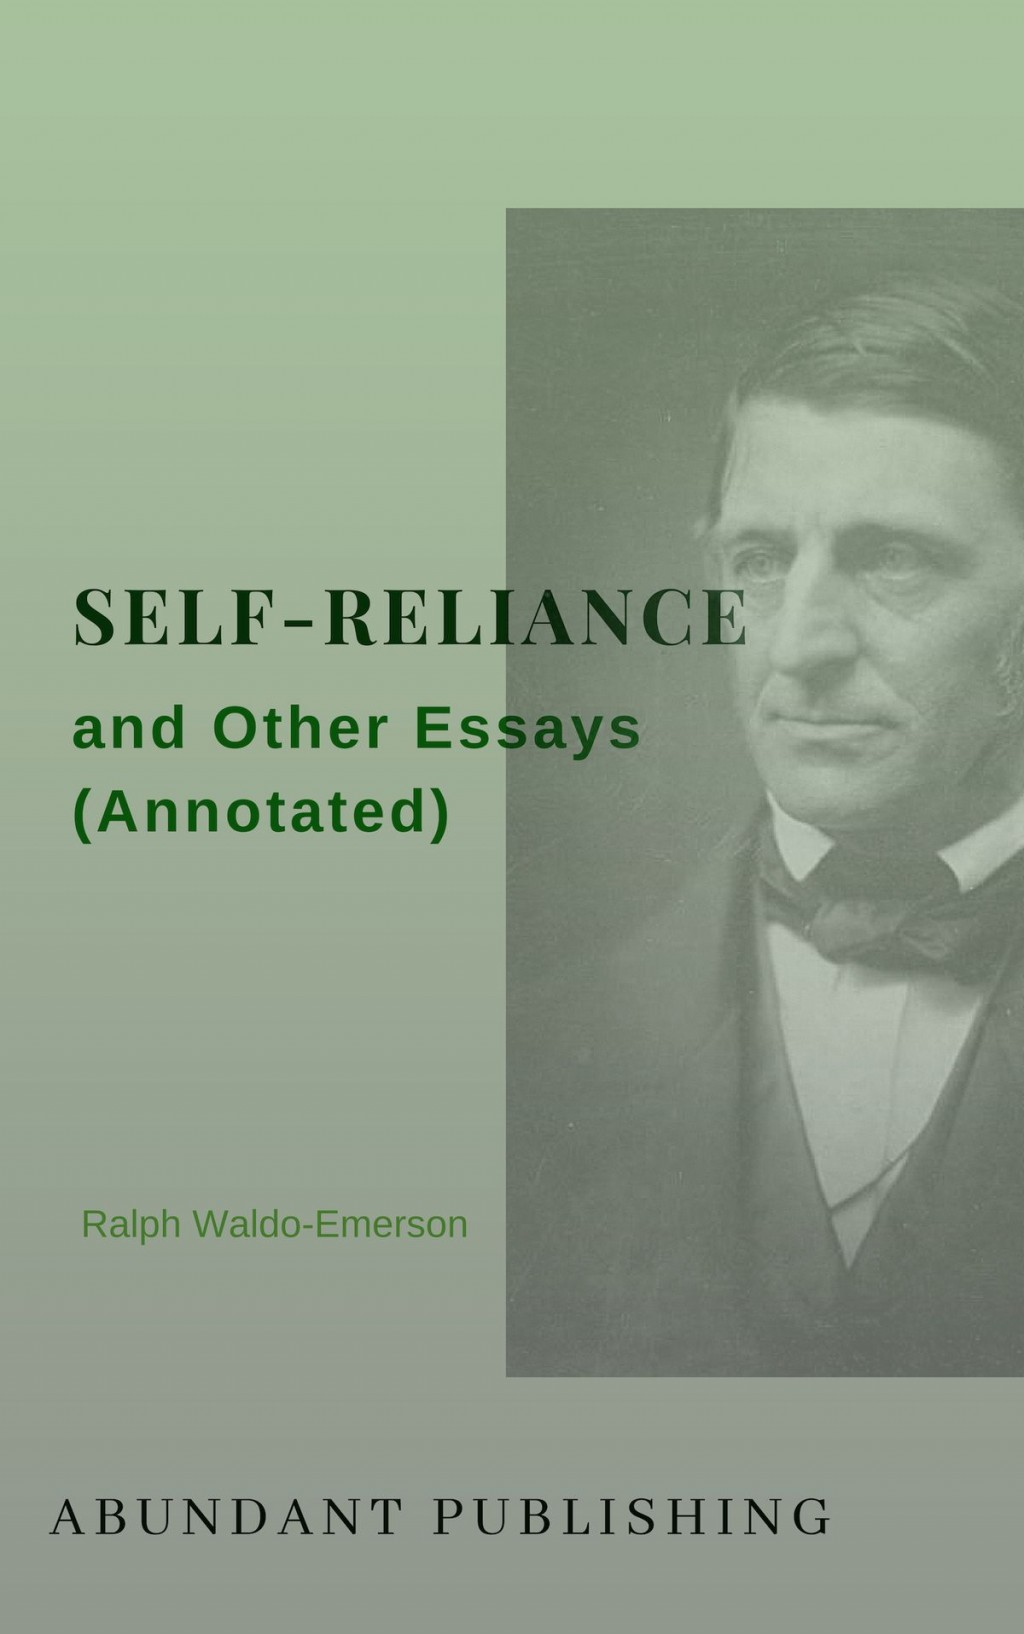 005 Self Reliance And Other Essays Annotated Essay Formidable Ekşi Self-reliance (dover Thrift Editions) Pdf Epub Large